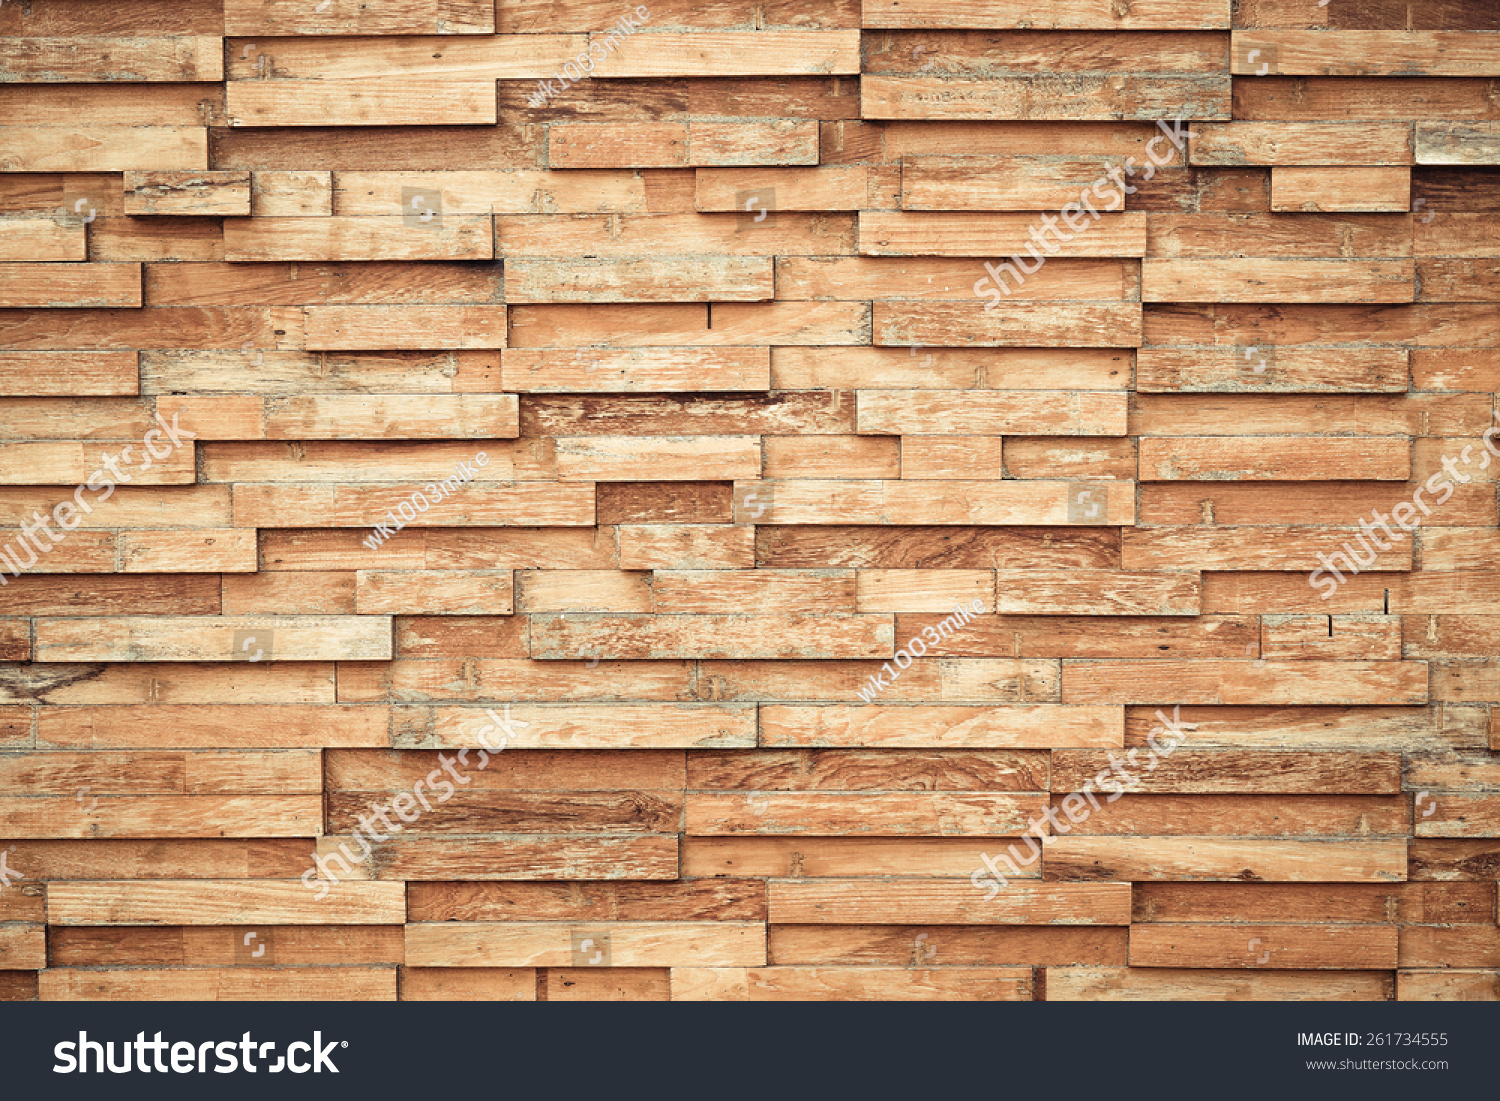 Layered Wood Plank Wall Decoration Stock Photo (Royalty Free ...